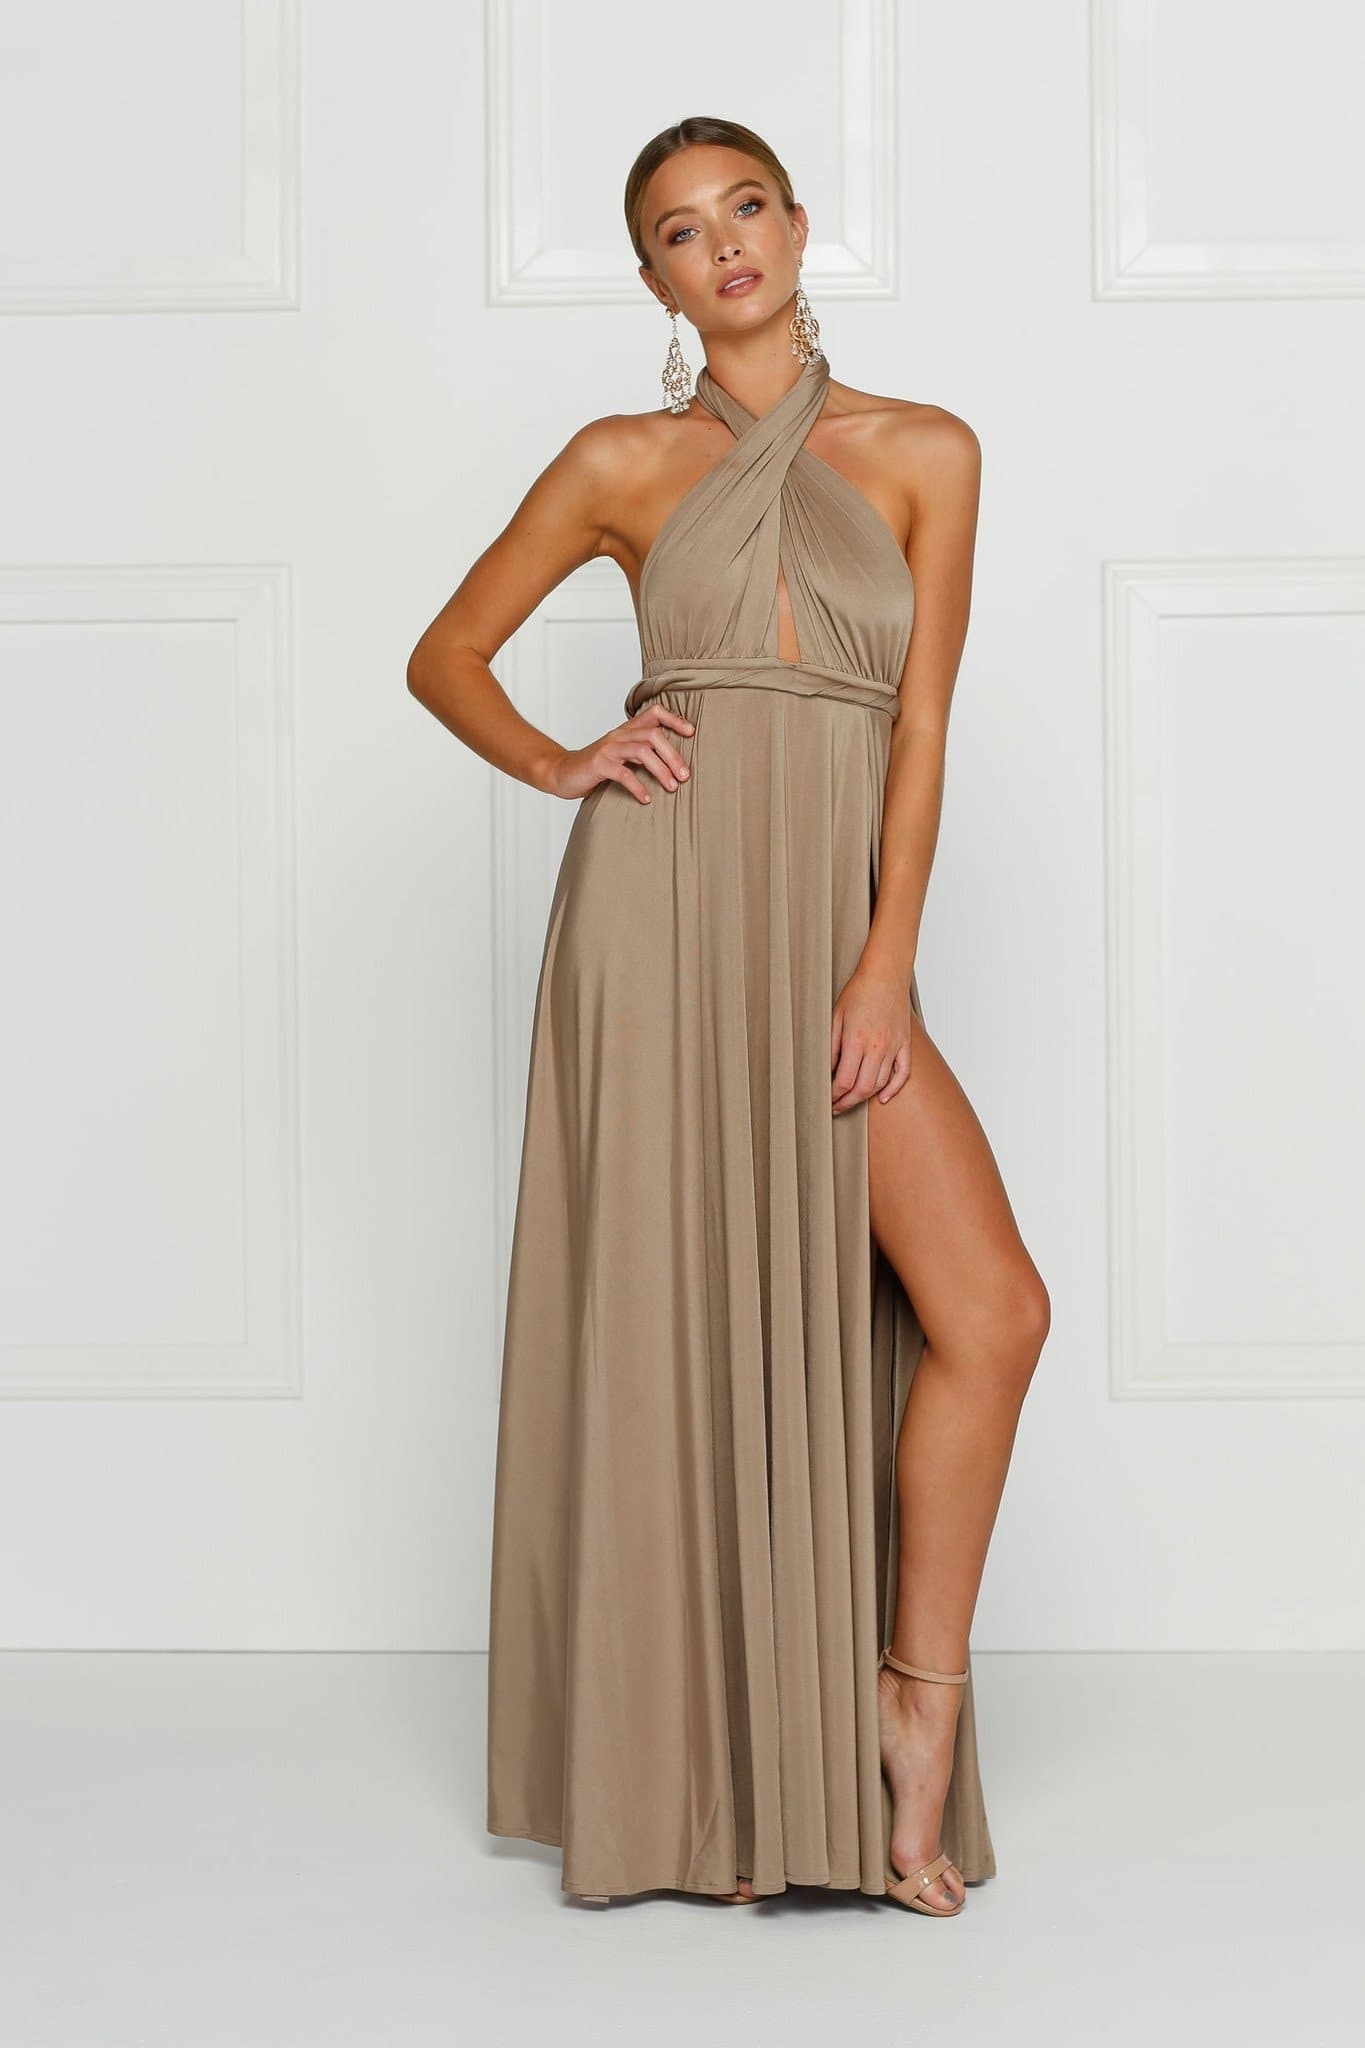 Catalina - Bronze Grecian Style Jersey Gown with Slit – A&N Luxe Label